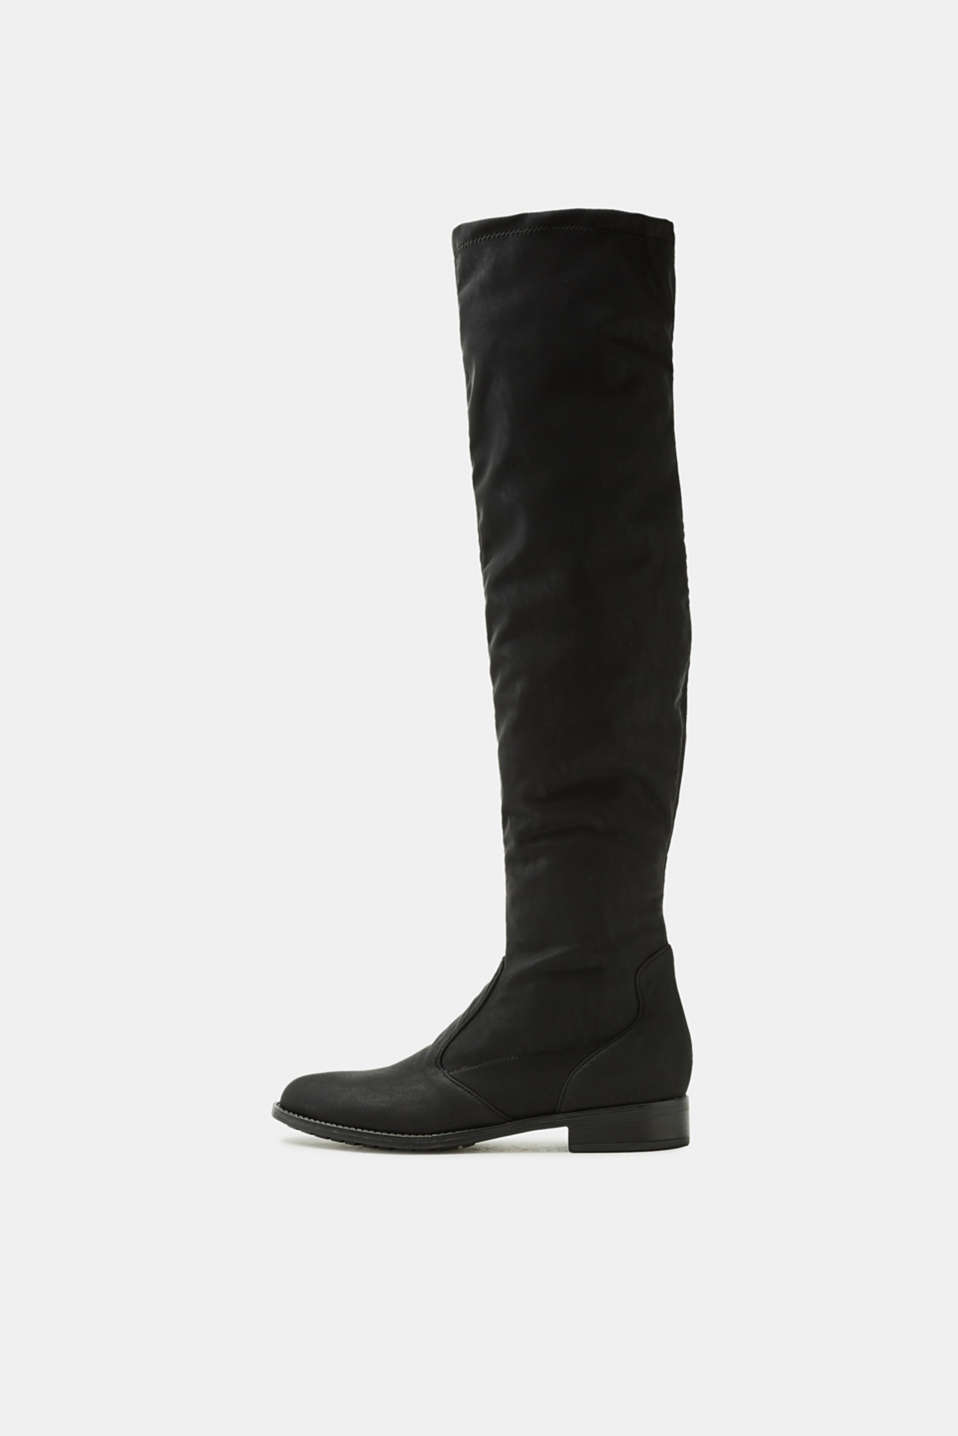 Esprit - Over-the-knee in faux leather